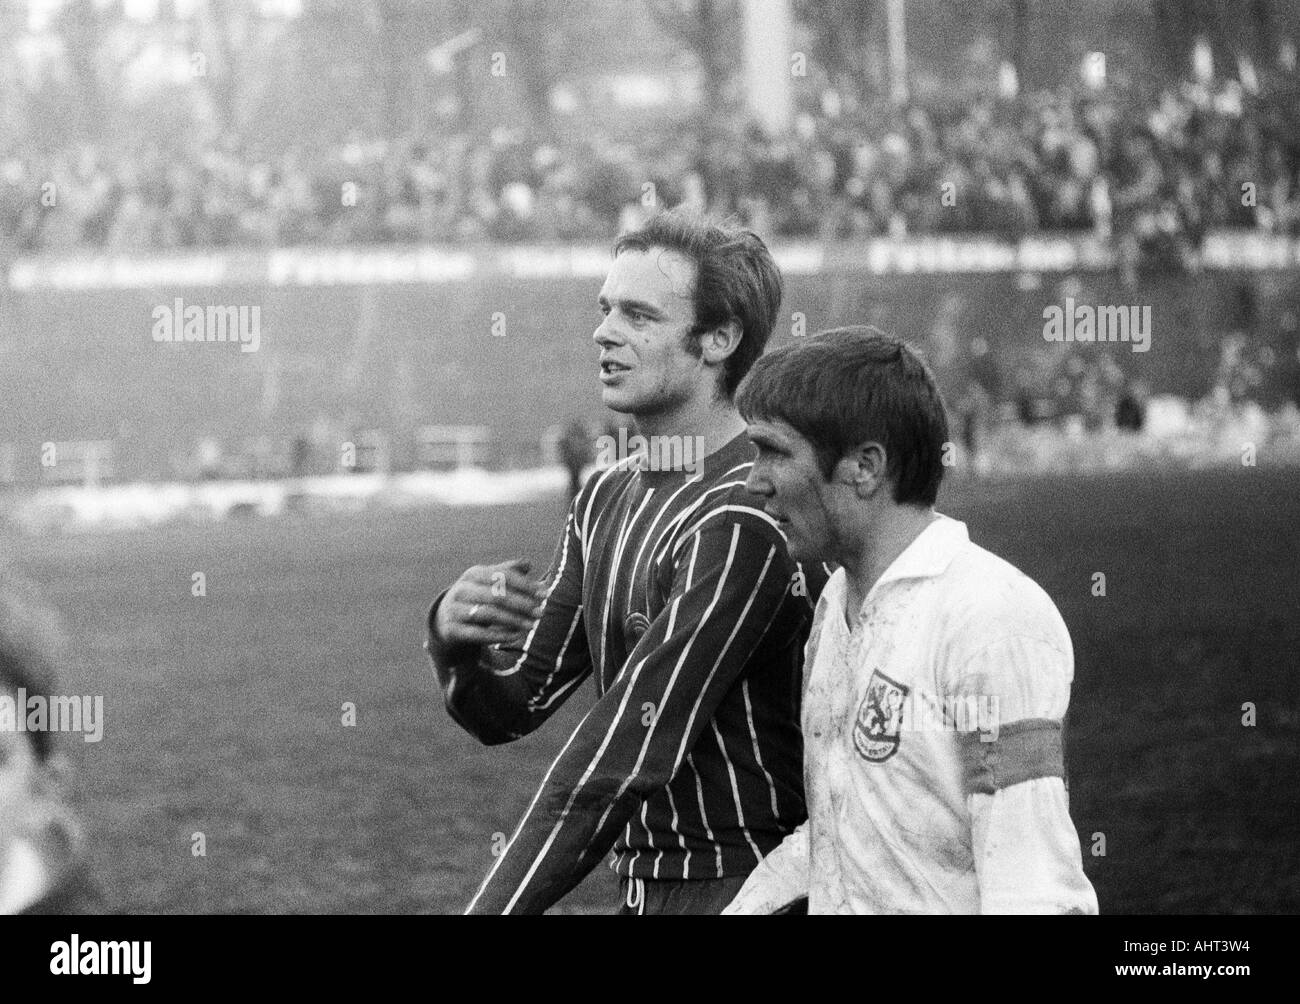 football, Regionalliga West, 1970/1971, Stadium am Zoo in Wuppertal, Wuppertaler SV versus Fortuna Duesseldorf 1:1, football players leaving the pitch, left Klaus Budde (Ddorf), right Manfred Reichert (WSV) - Stock Image